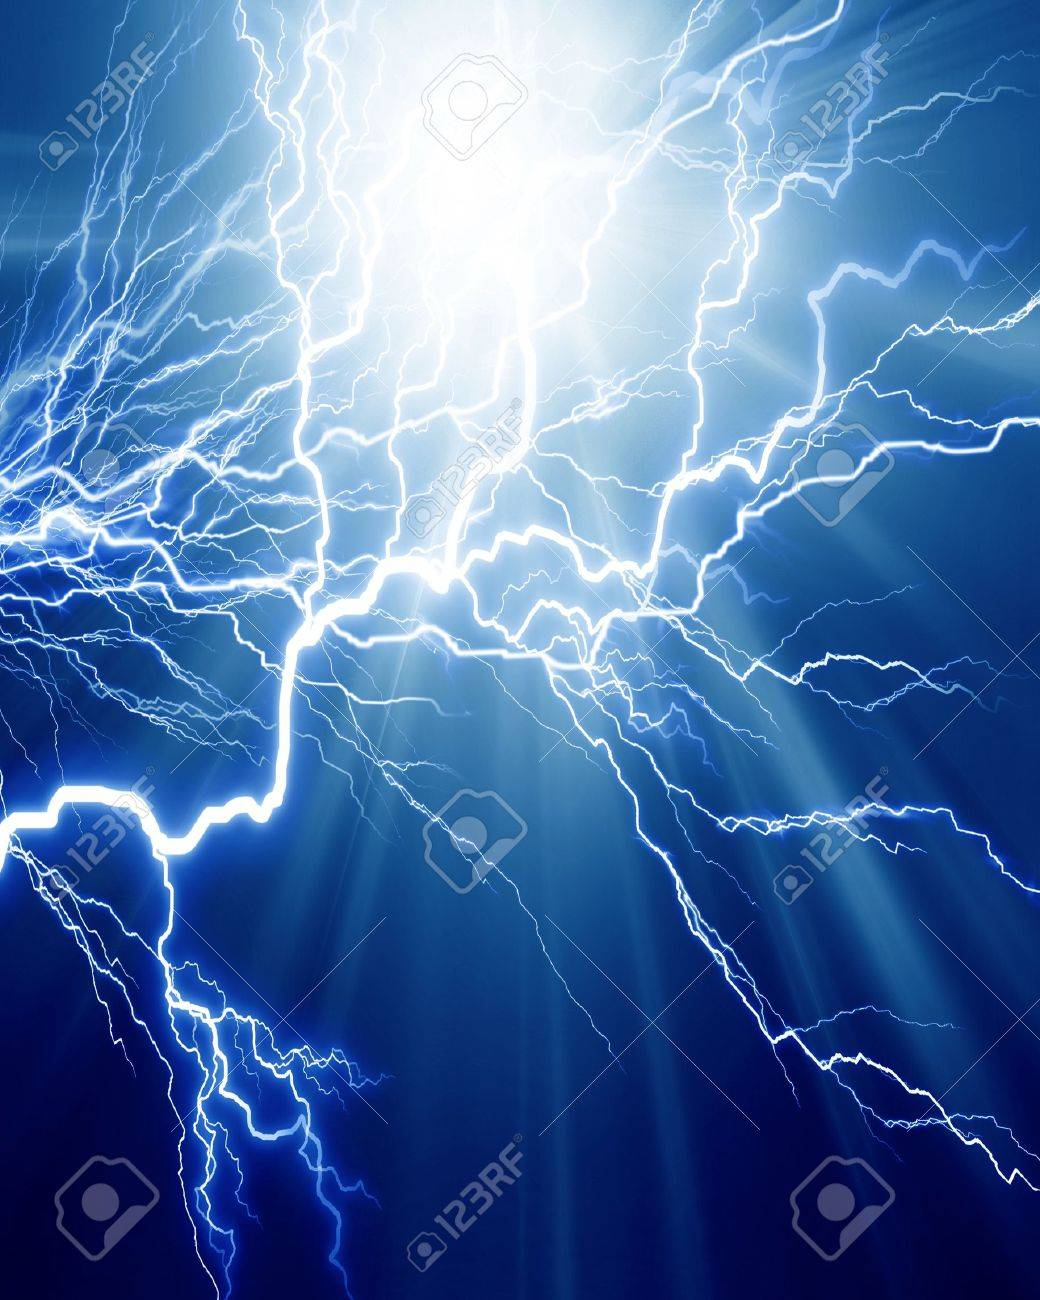 Intense electrical discharge on a dark background Stock Photo - 14670086